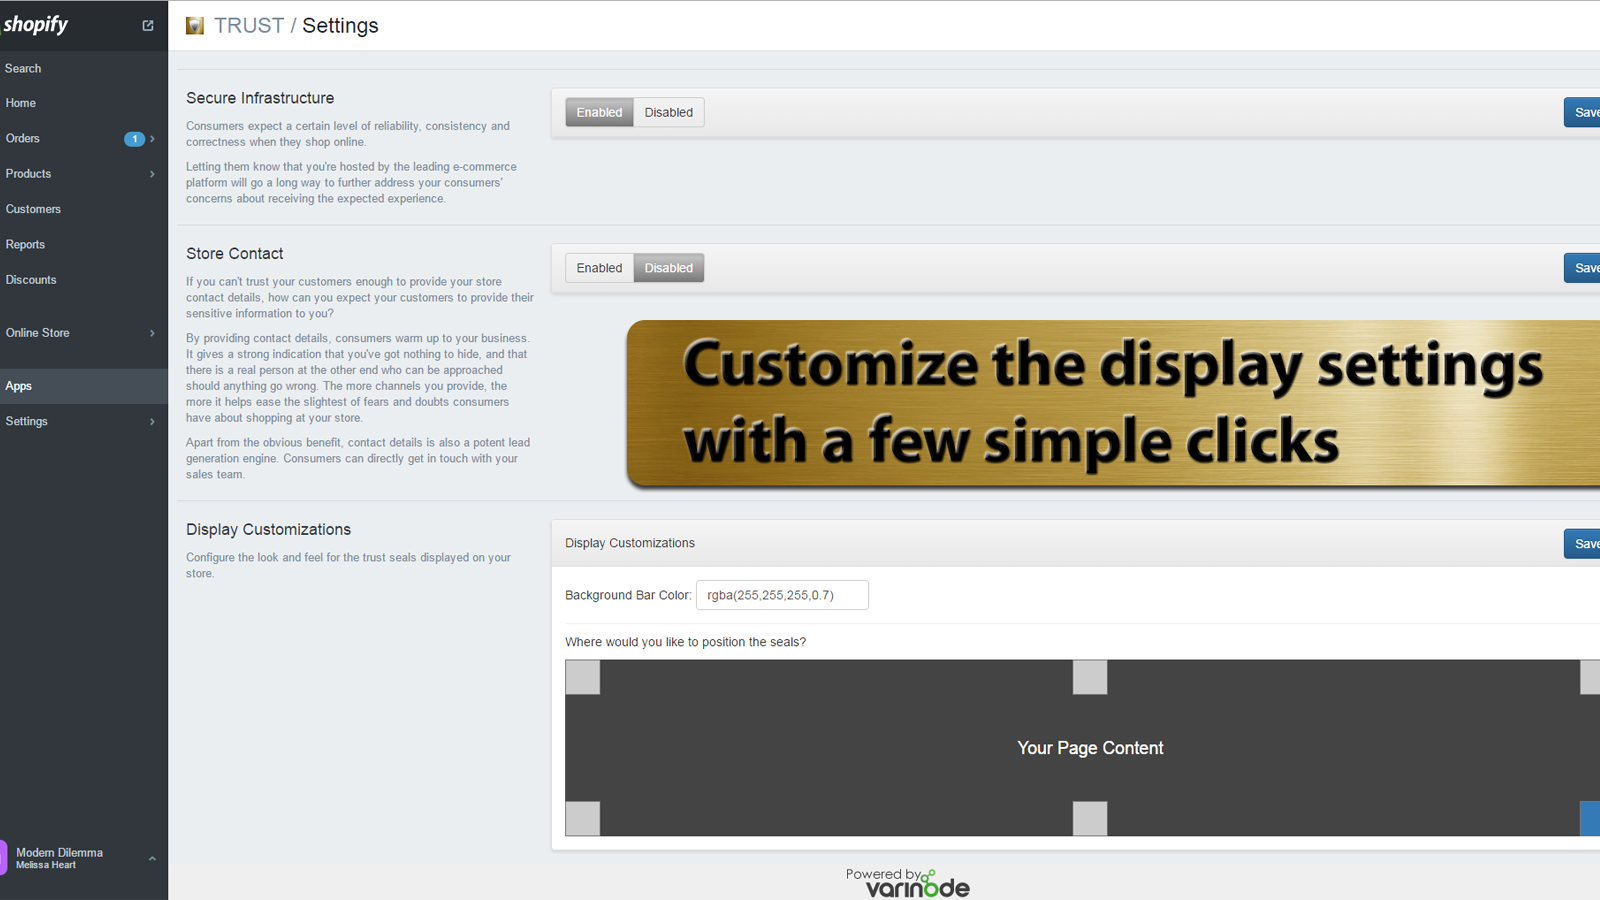 Customize the display settings with a few simple clicks